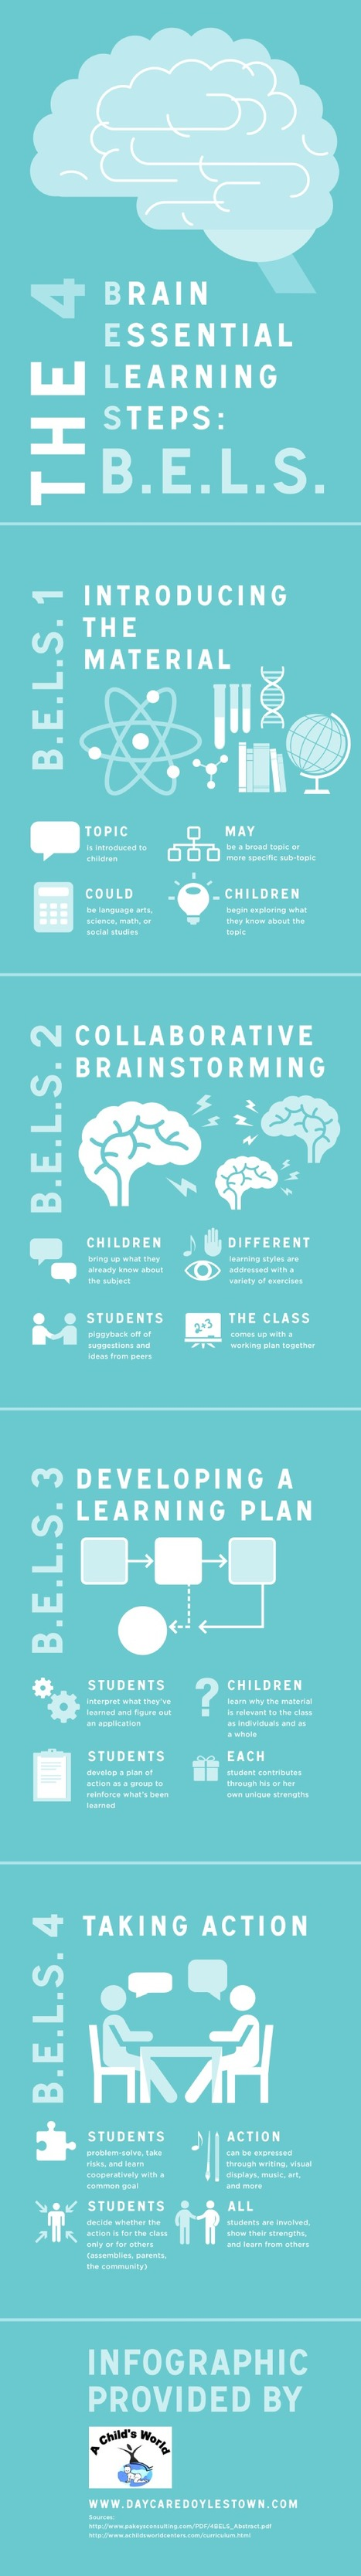 The 4 Brain Essential Learning Steps [Infographic] | Learning At Work | Scoop.it